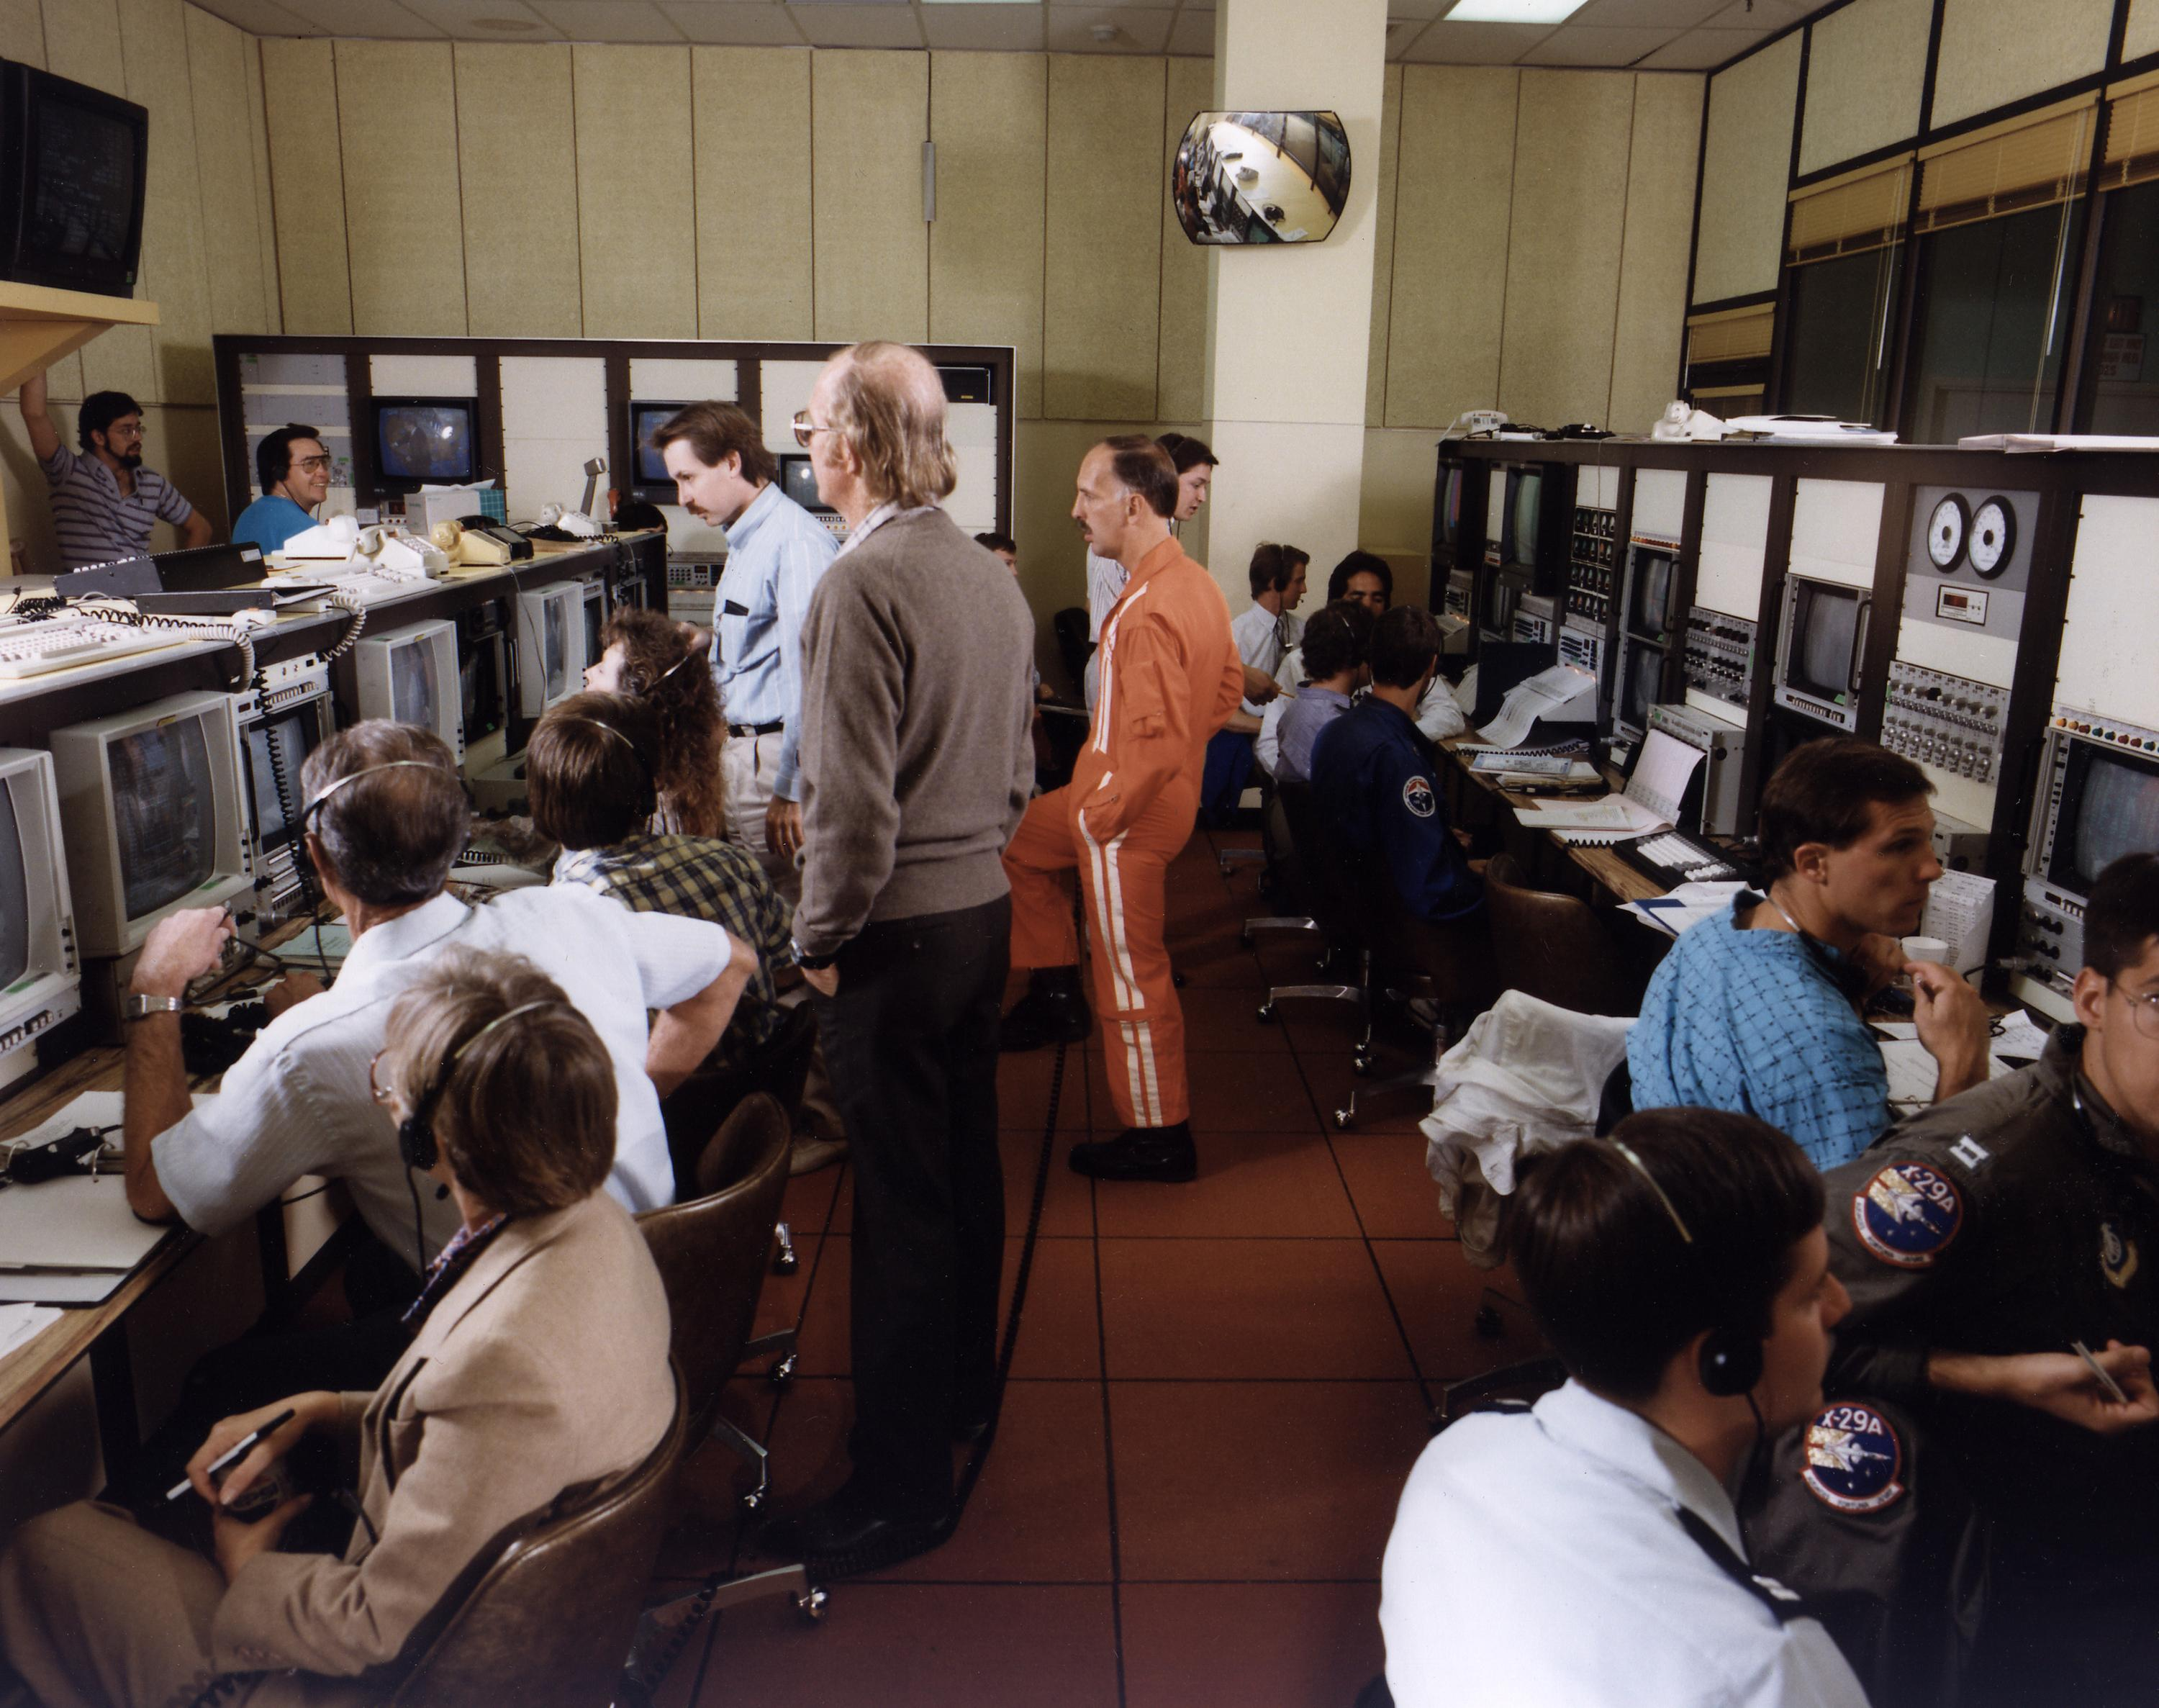 70s NASA Command Center  Pics about space